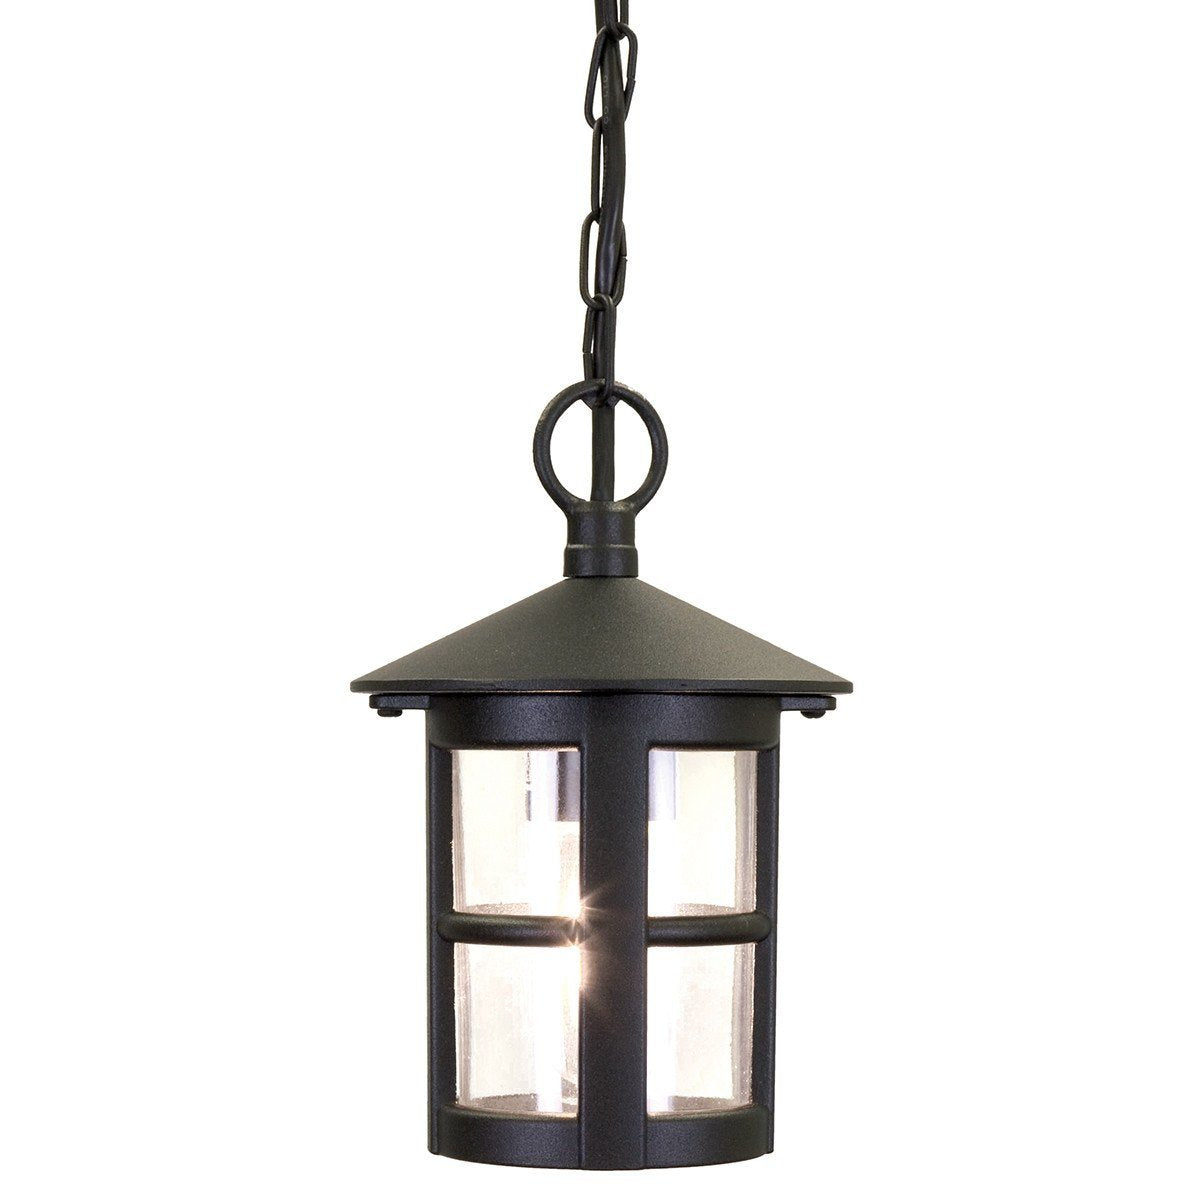 Hereford Ridgid Tube Lantern 235mm Black - London Lighting - 1